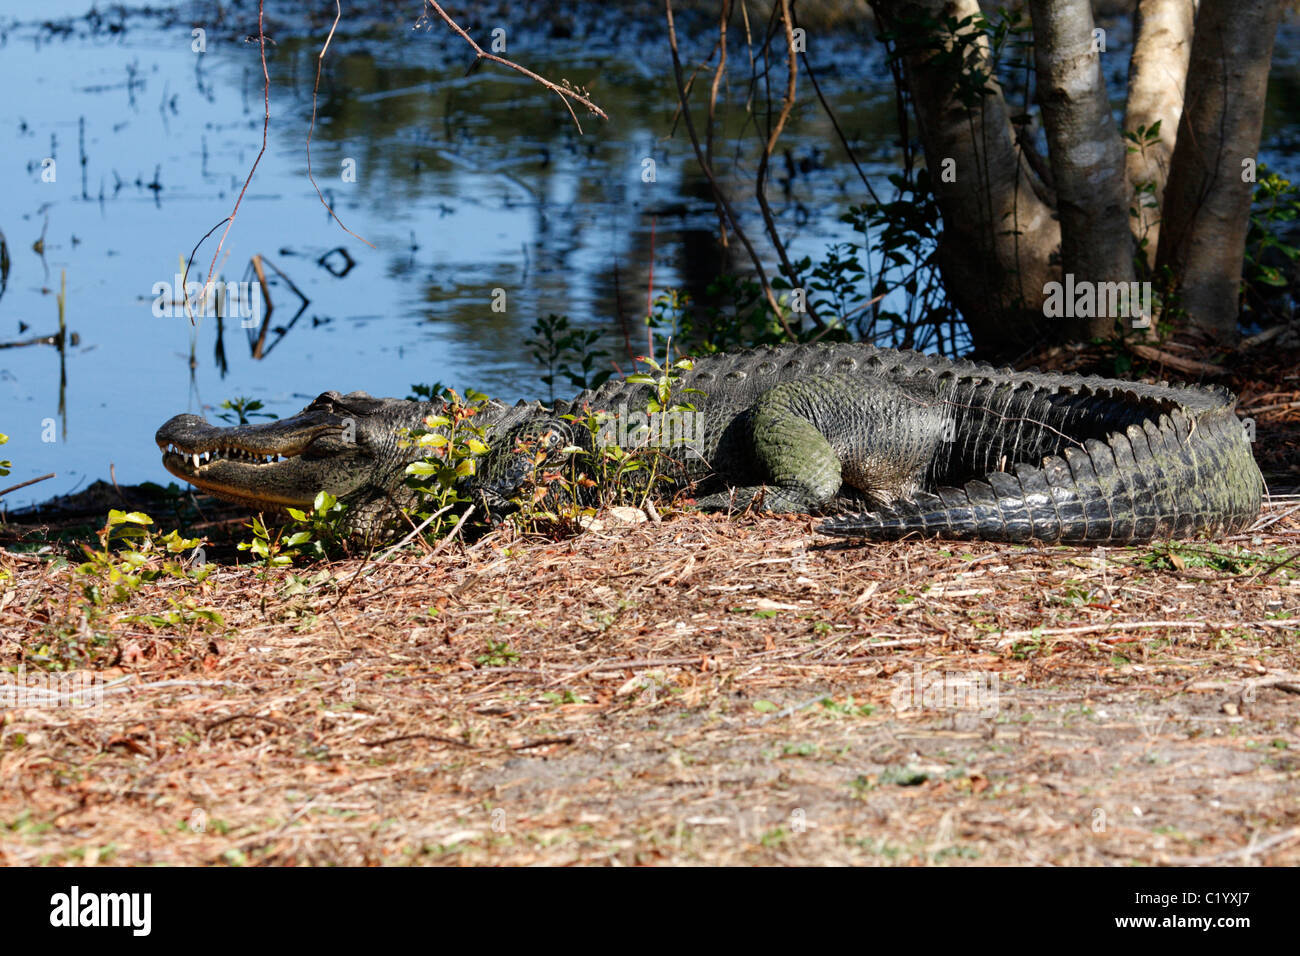 American alligator (Alligator mississippiensis) Stock Photo